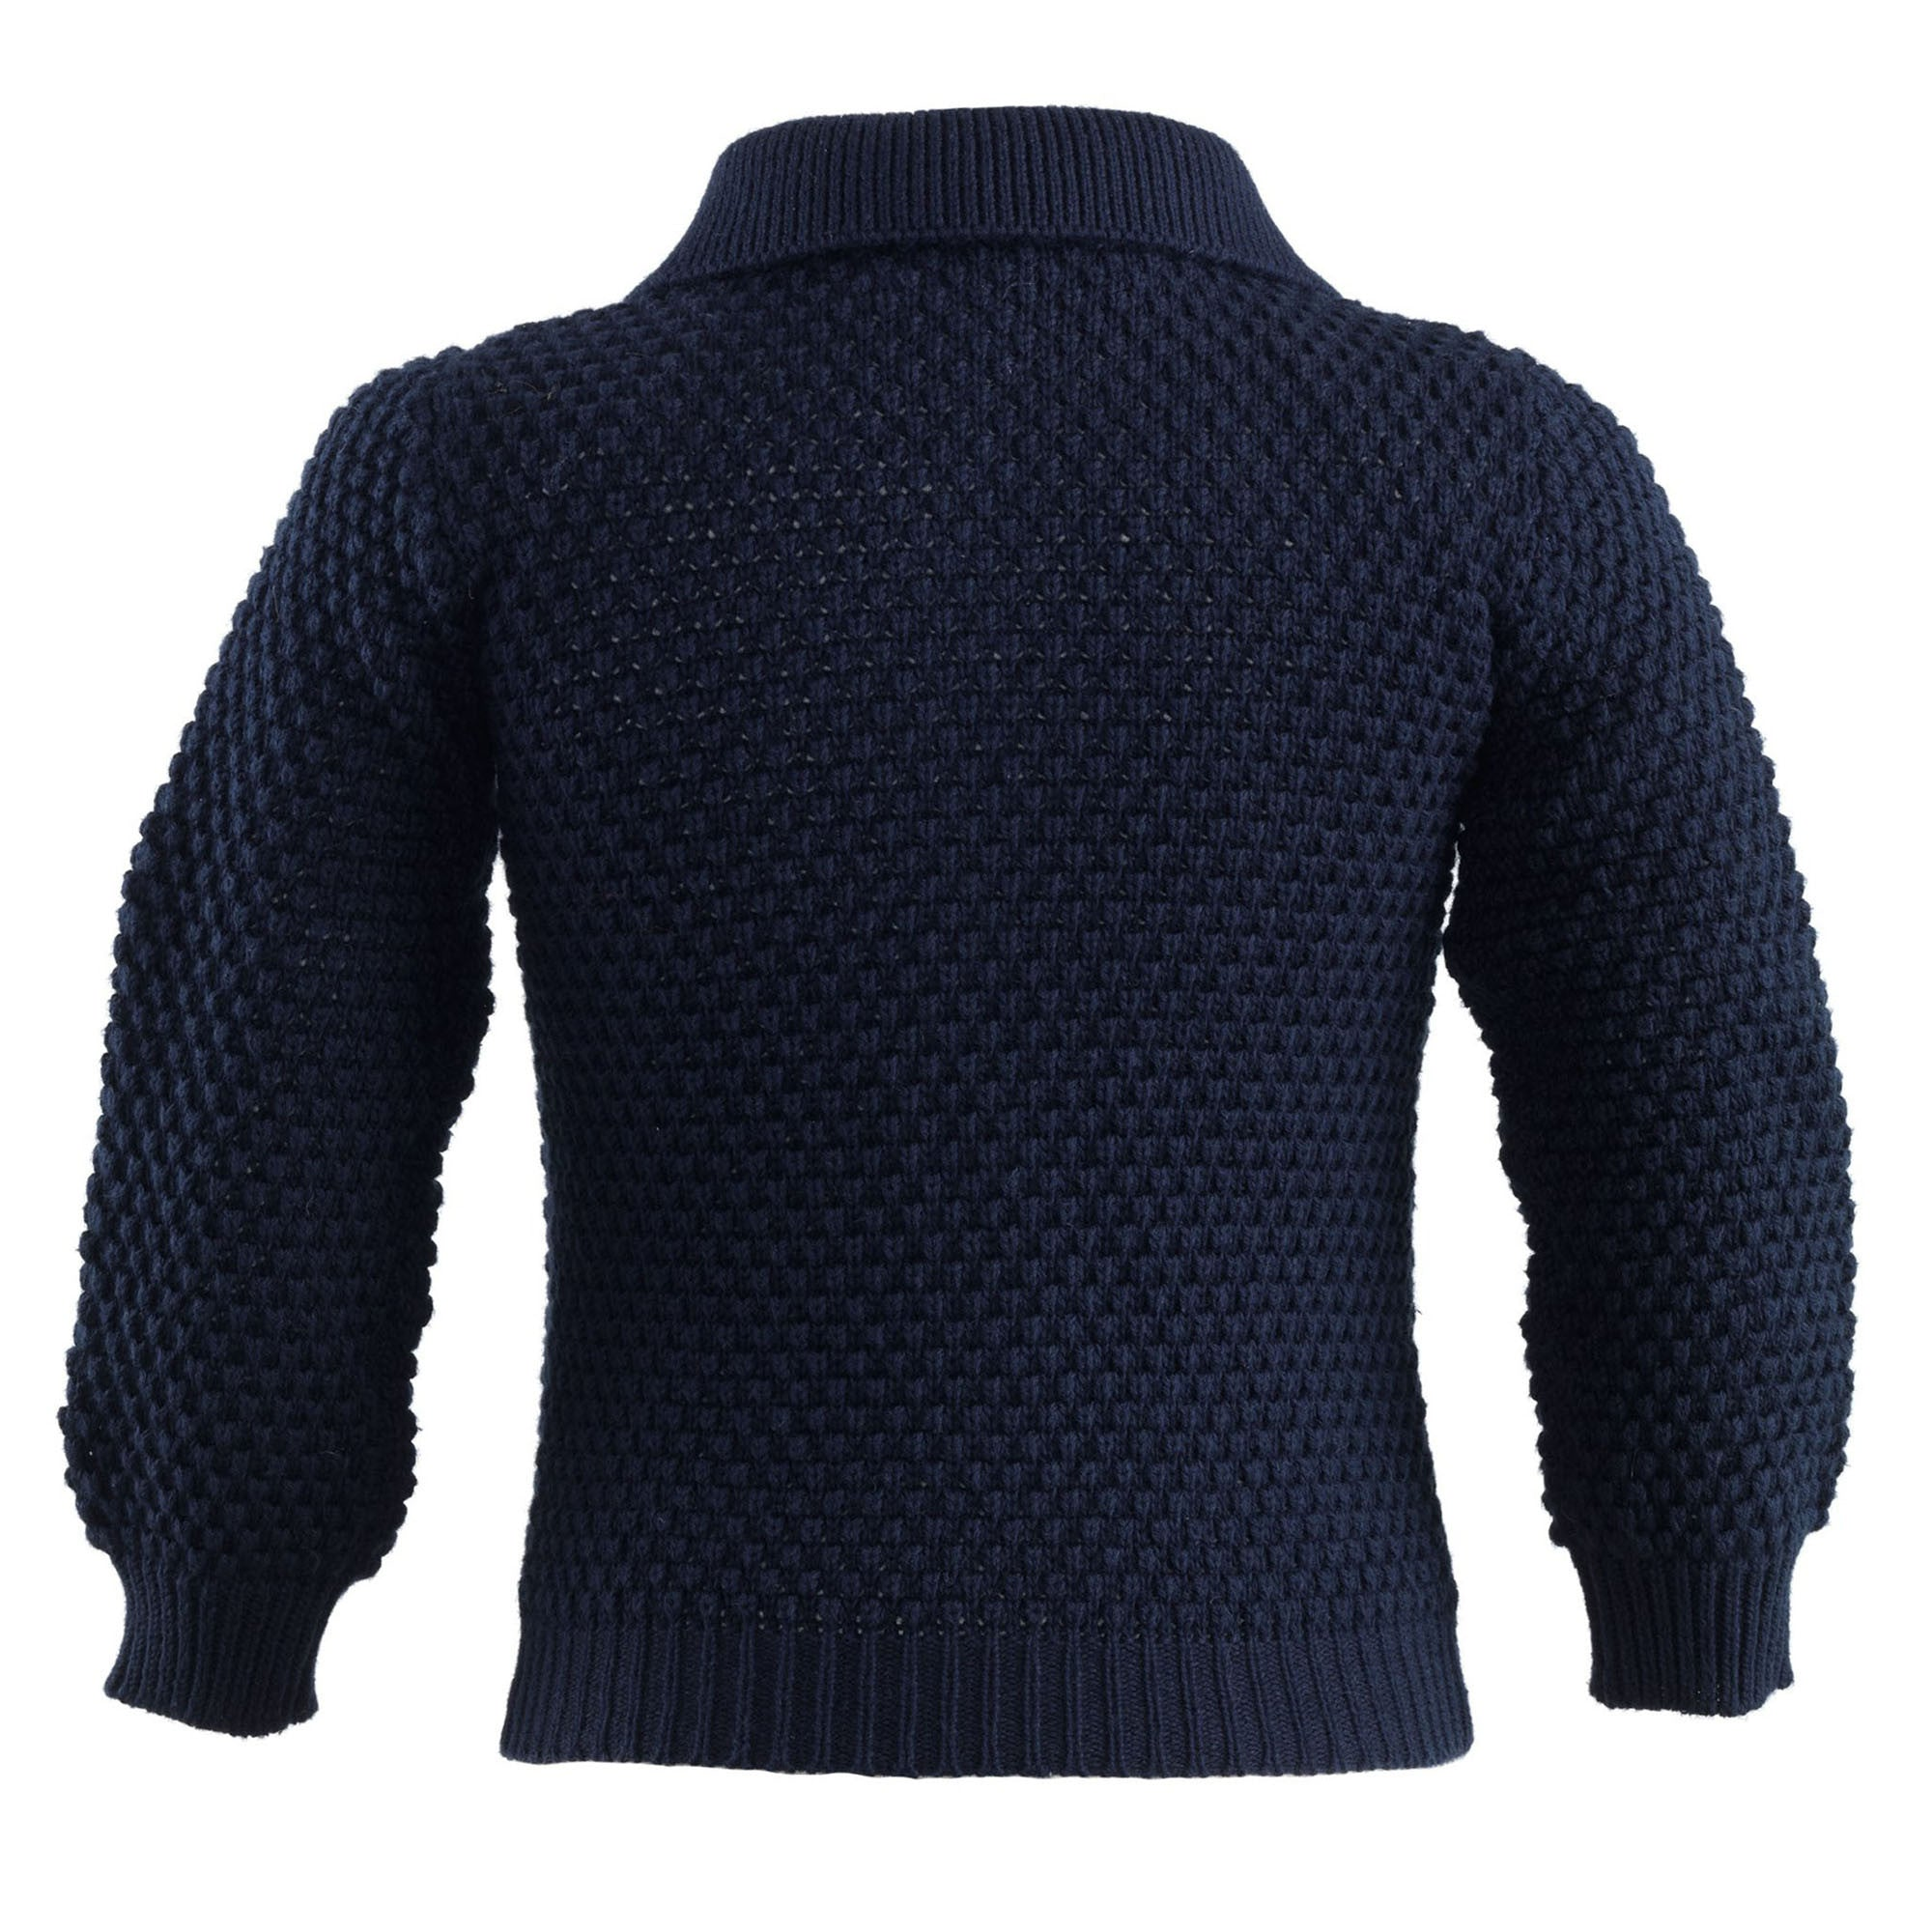 Navy Moss Stitch Cardigan